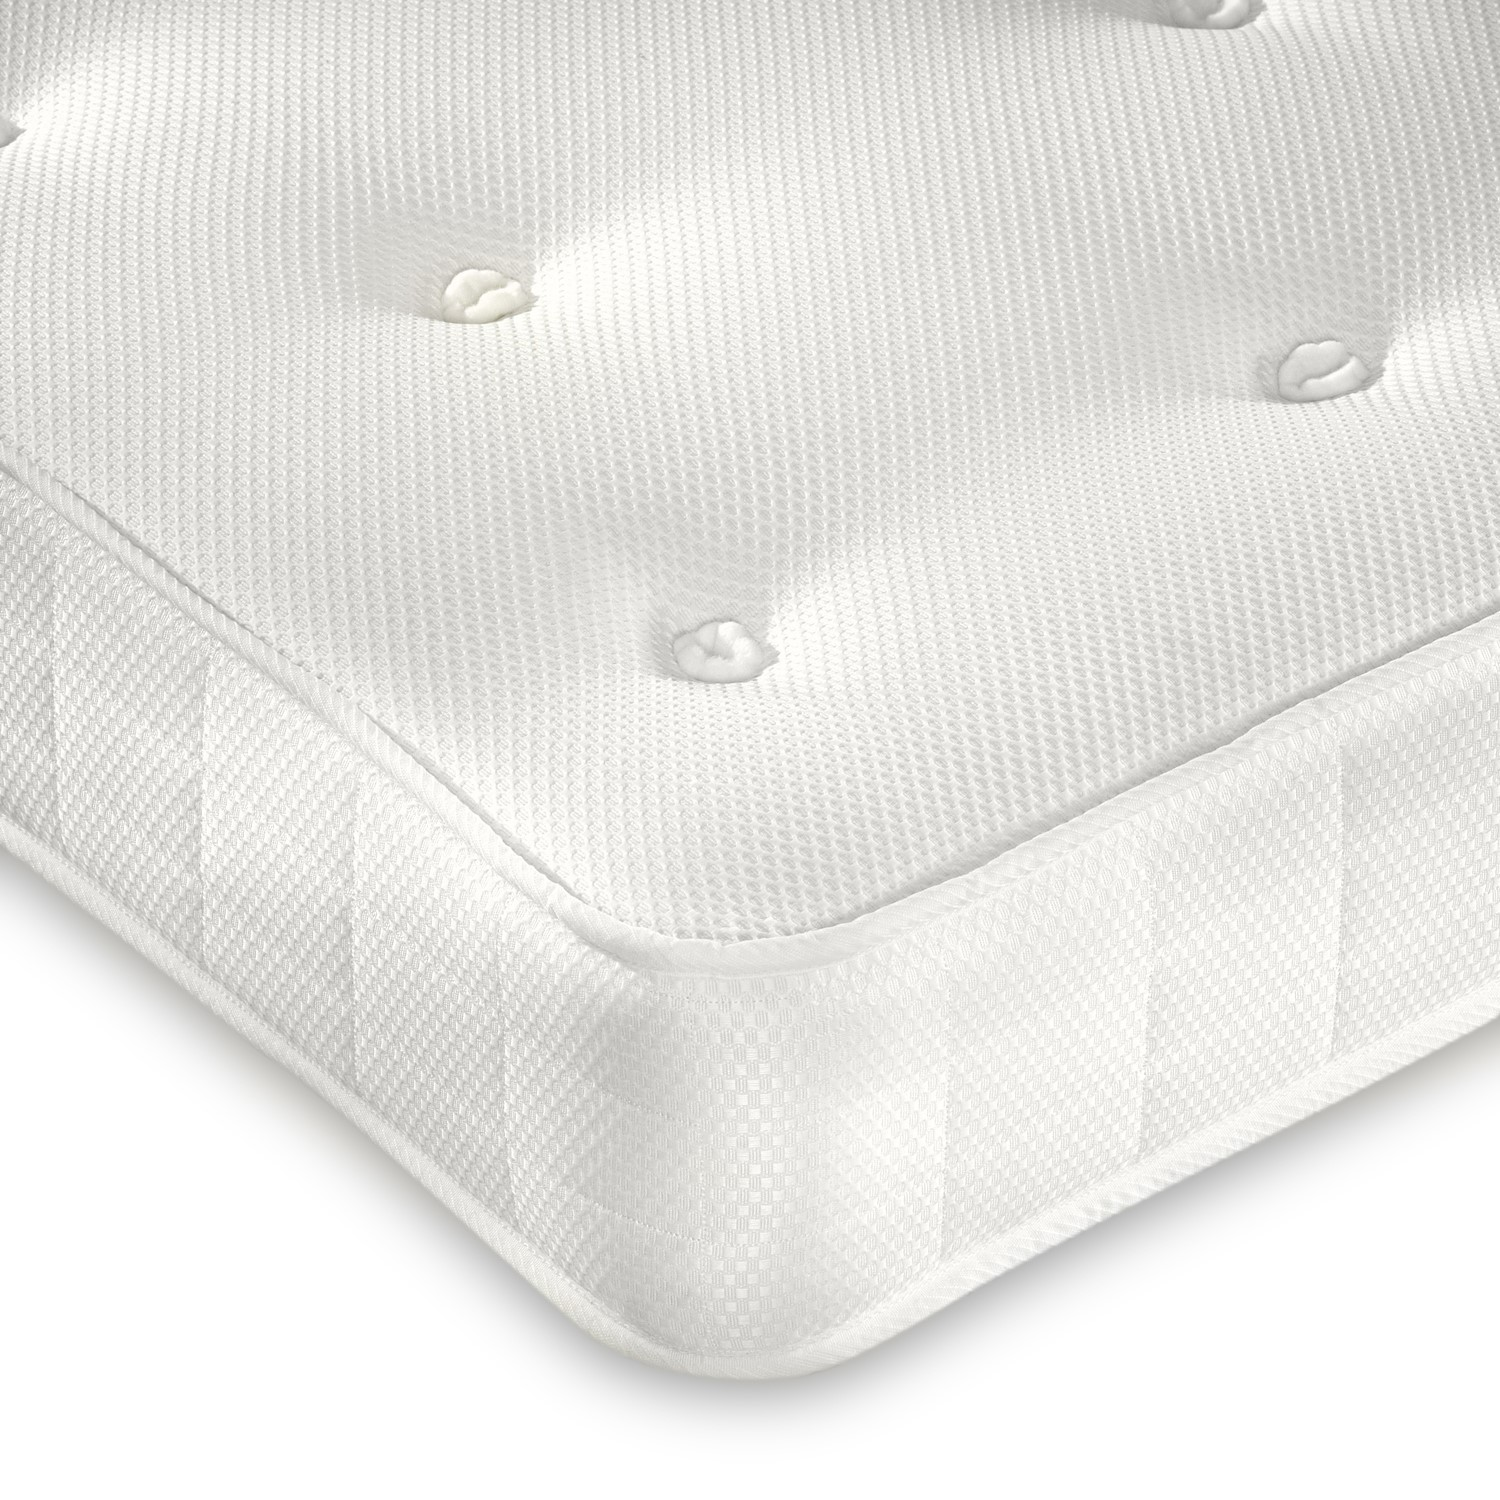 Clay premium orthopaedic coil sprung single mattress - firm firmness